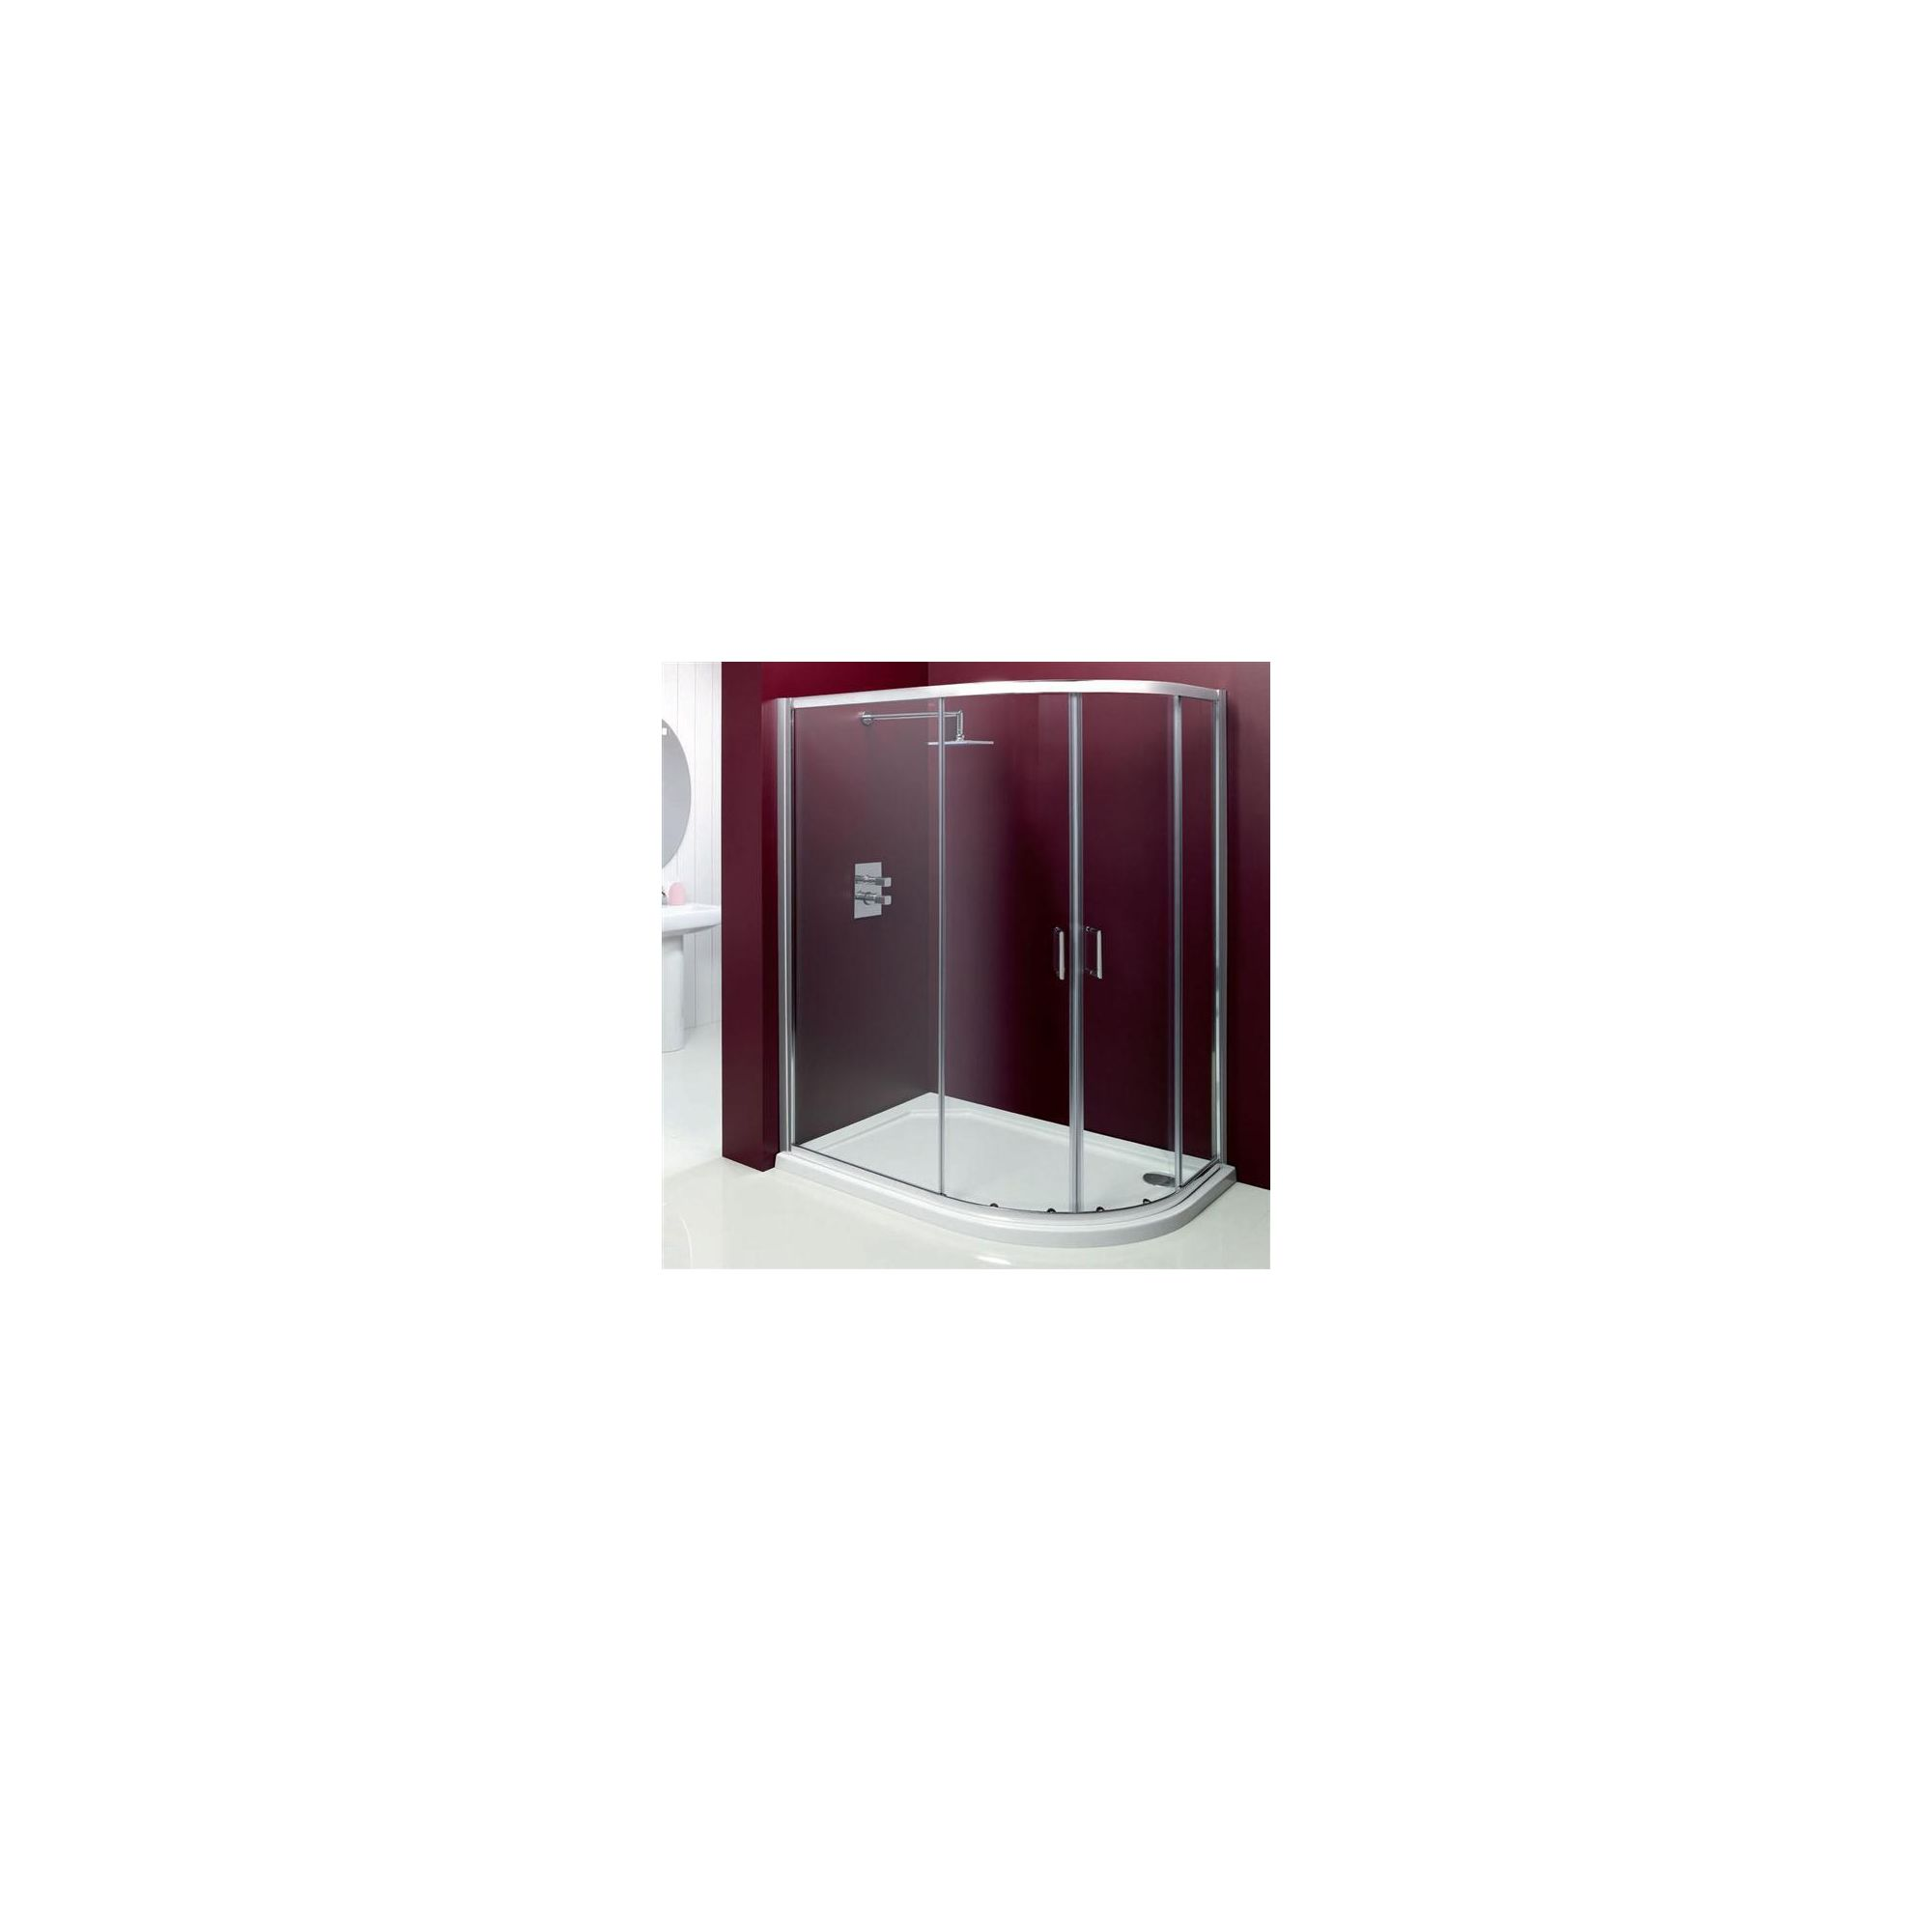 Merlyn Vivid Entree Offset Quadrant Shower Enclosure, 1000mm x 800mm, Right Handed, Low Profile Tray, 6mm Glass at Tesco Direct